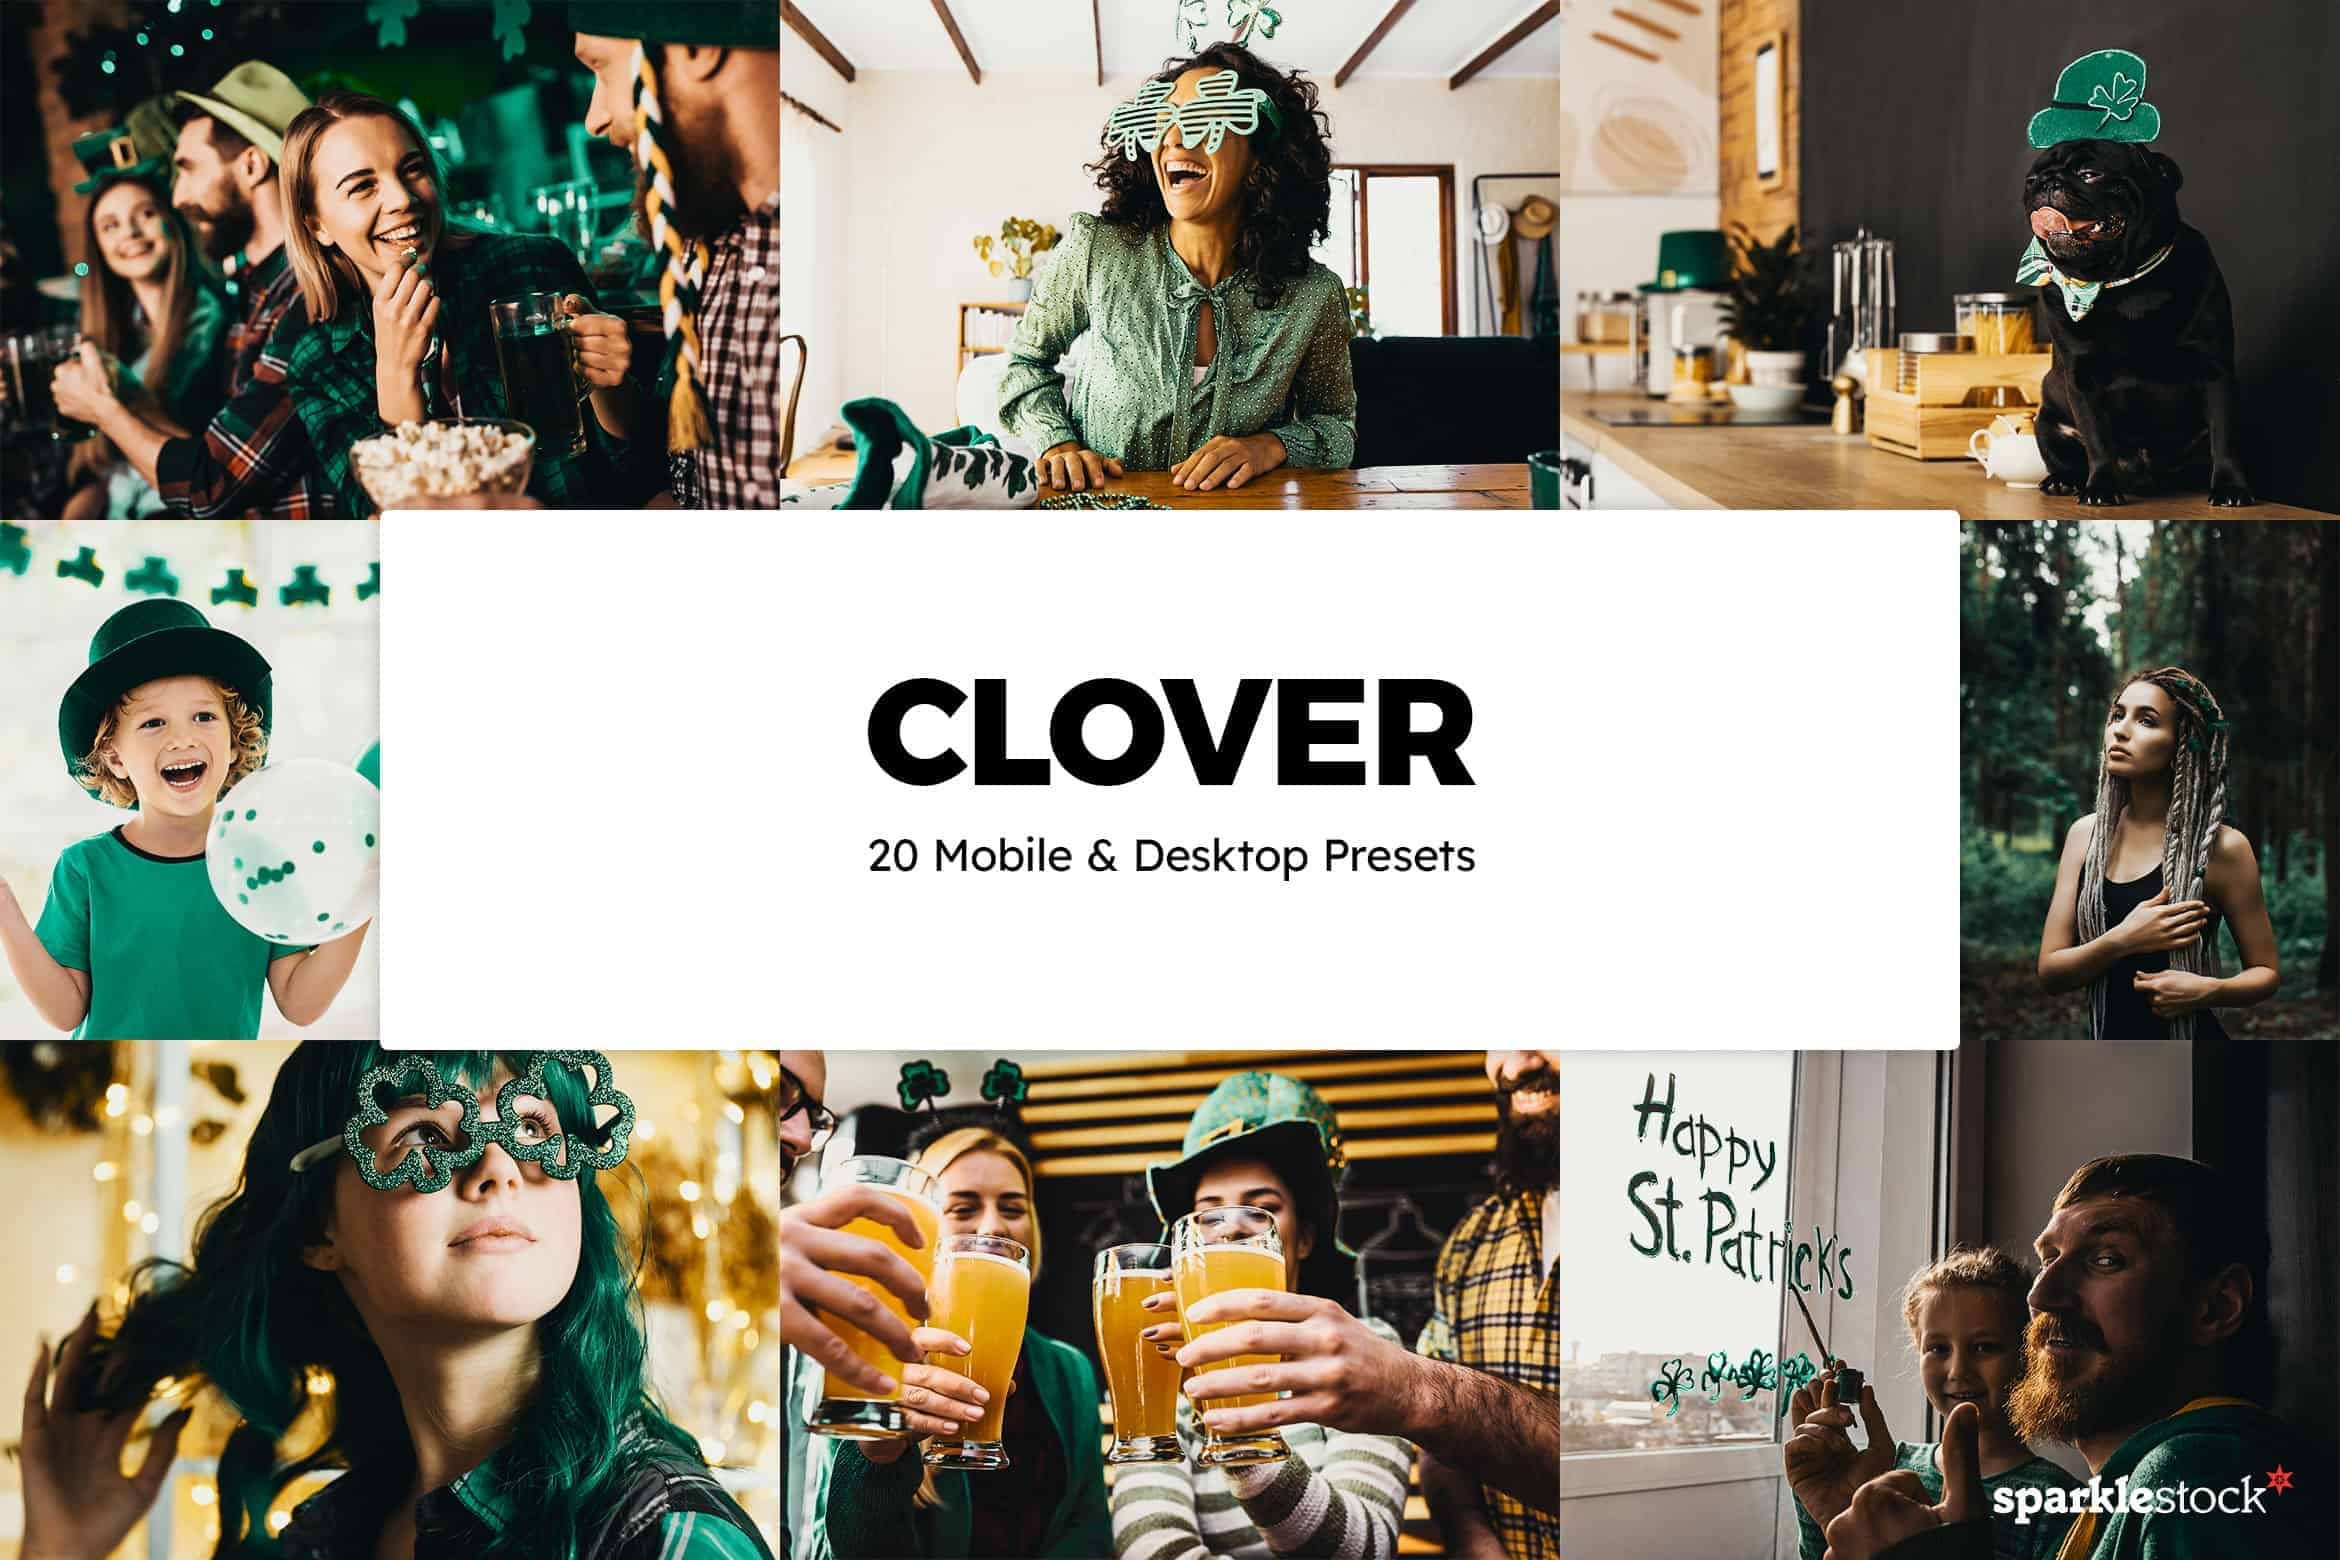 8 Free St. Patrick's Day Lightroom Presets and LUTs